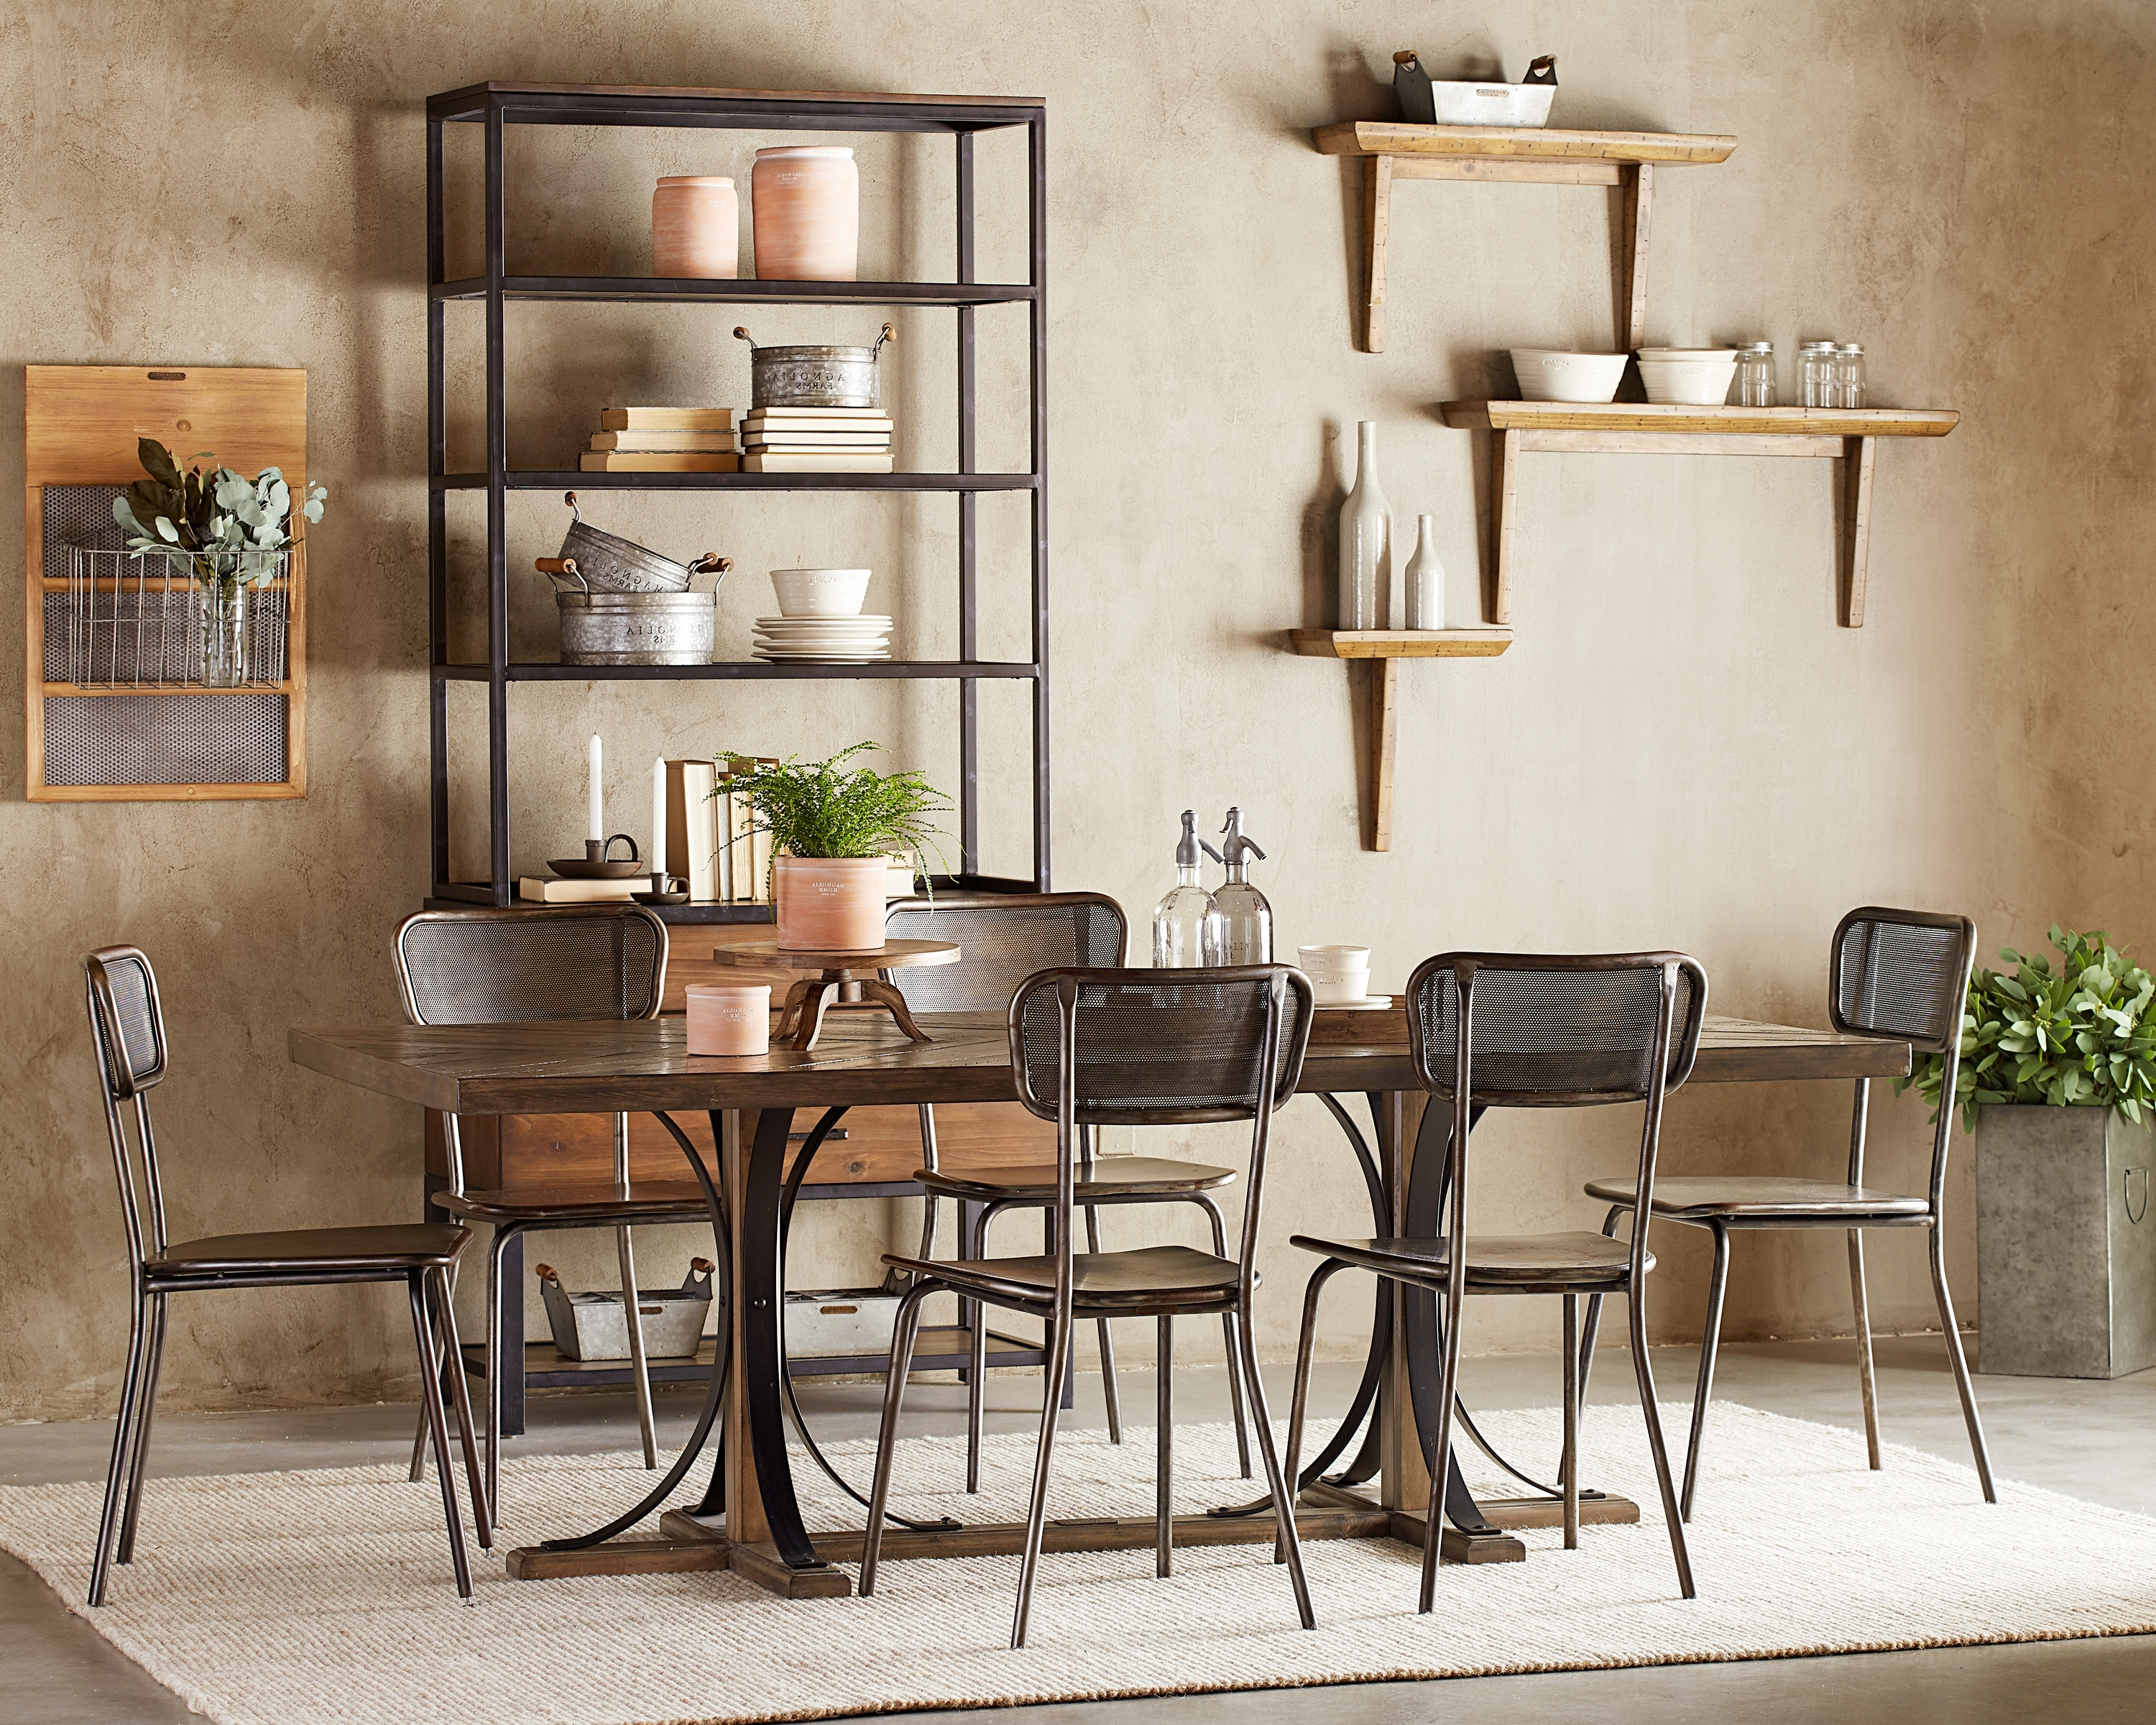 Favorite Magnolia Home Shop Floor Dining Tables With Iron Trestle Pertaining To Iron Trestle Dining Table – Magnolia Home (View 4 of 25)